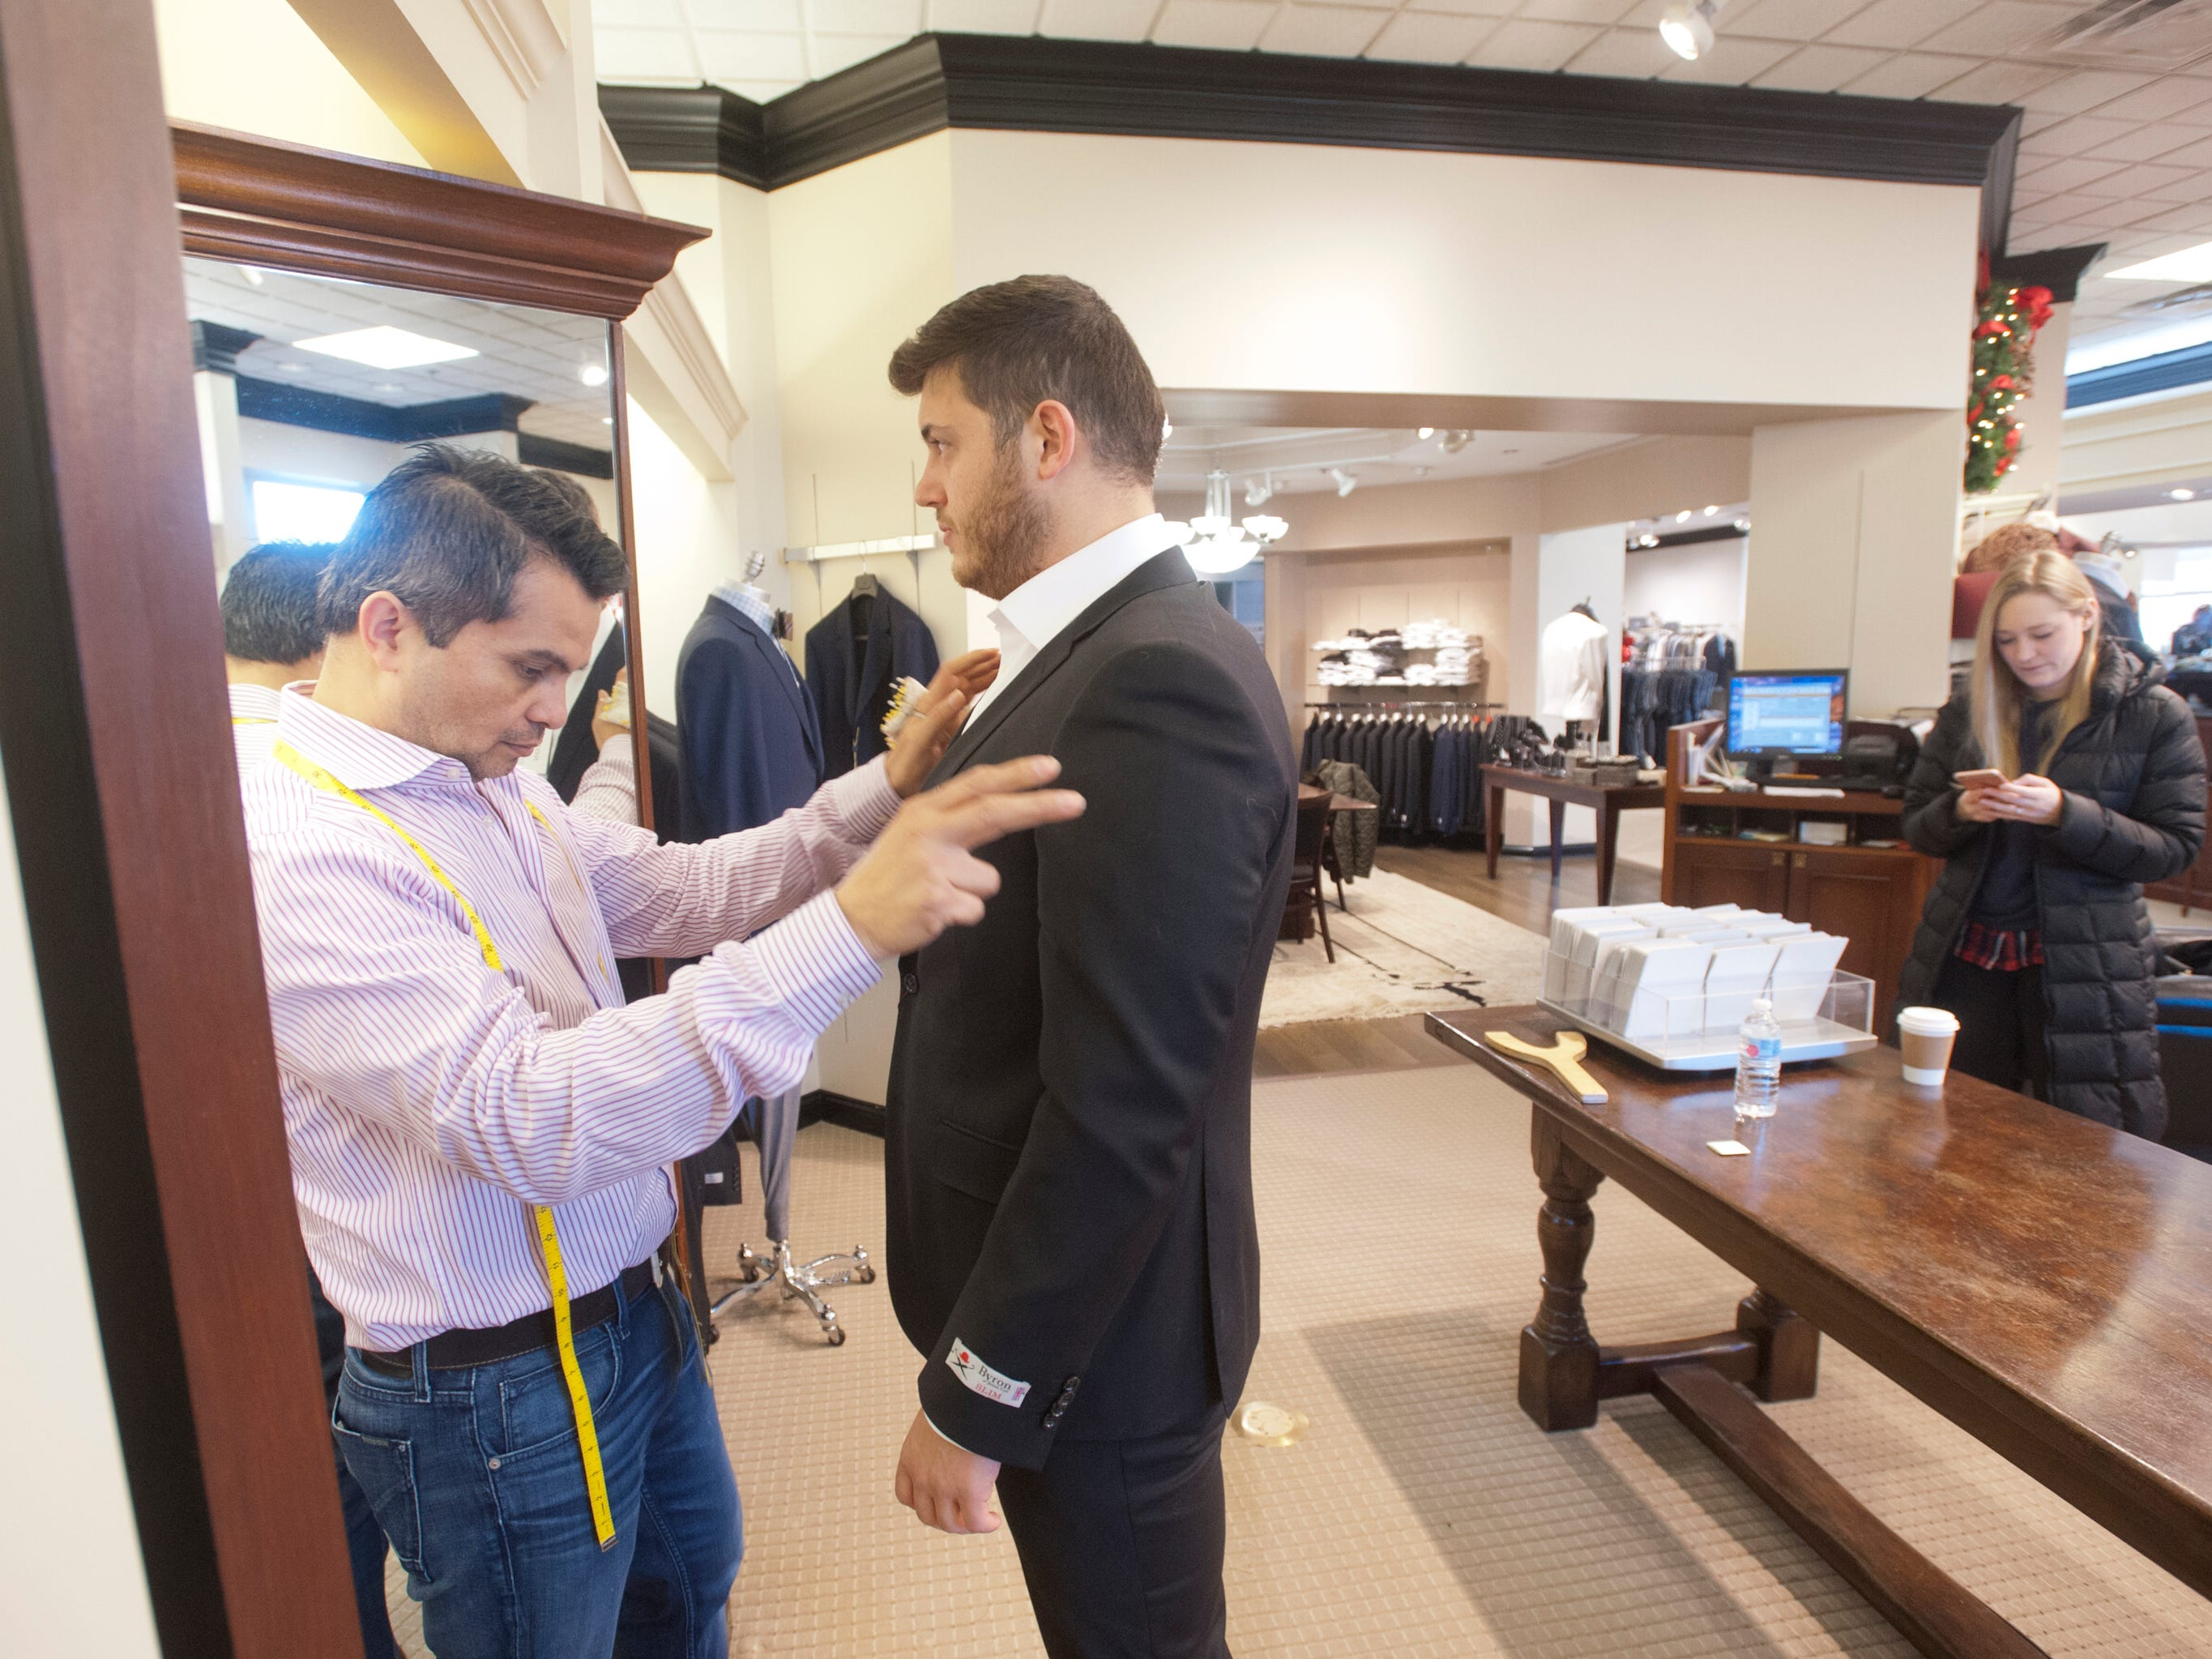 Rodes store tailor David Amaya fits Morgan Davis, of Sydney, Australia, for a suit as Davis' fiancee, Violet Downs of Bardstown, texts to a friend. The wedding is set for December 29th.